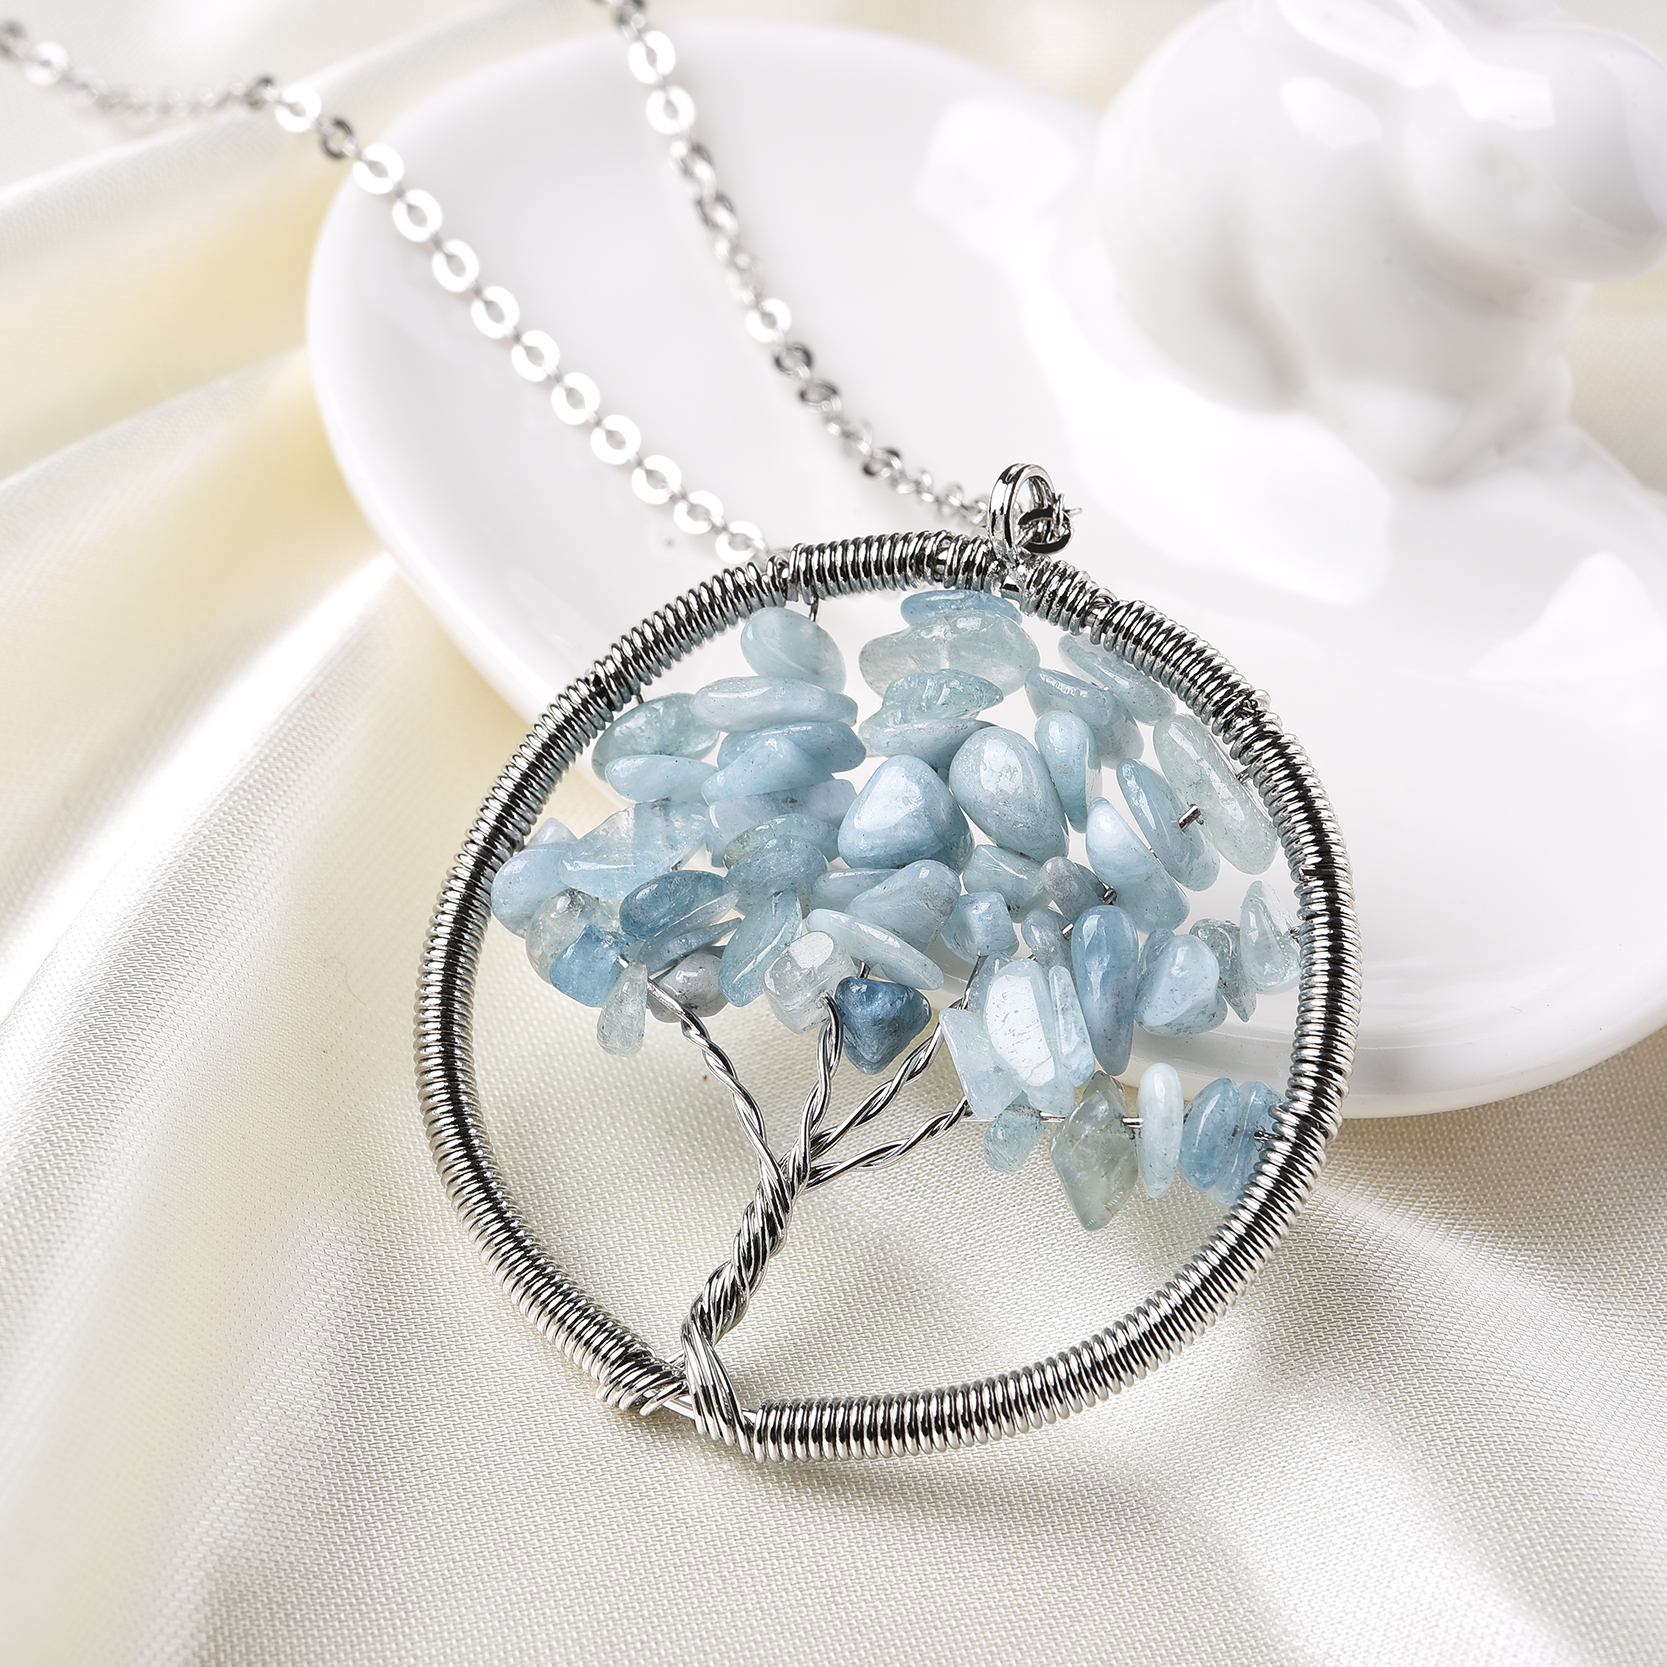 New Arrival Long Necklaces Women Natural Stone Necklaces Tree Of Life Pendant Necklaces For Women Wisdom Tree Necklaces Jewelry(China (Mainland))